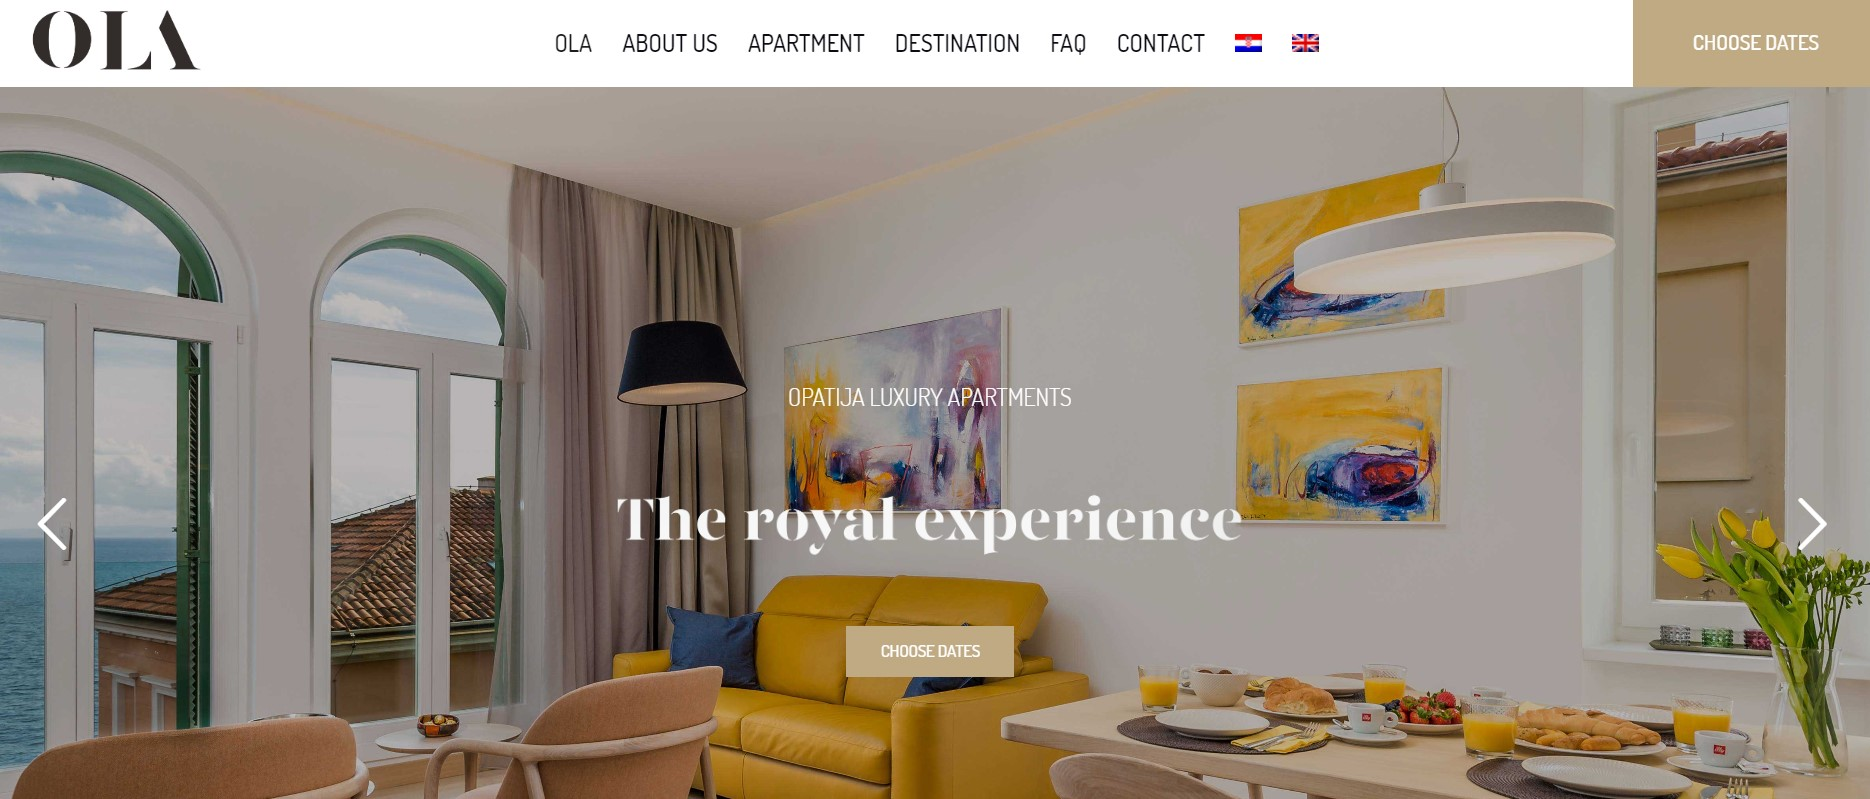 Luxury vacation rental branding